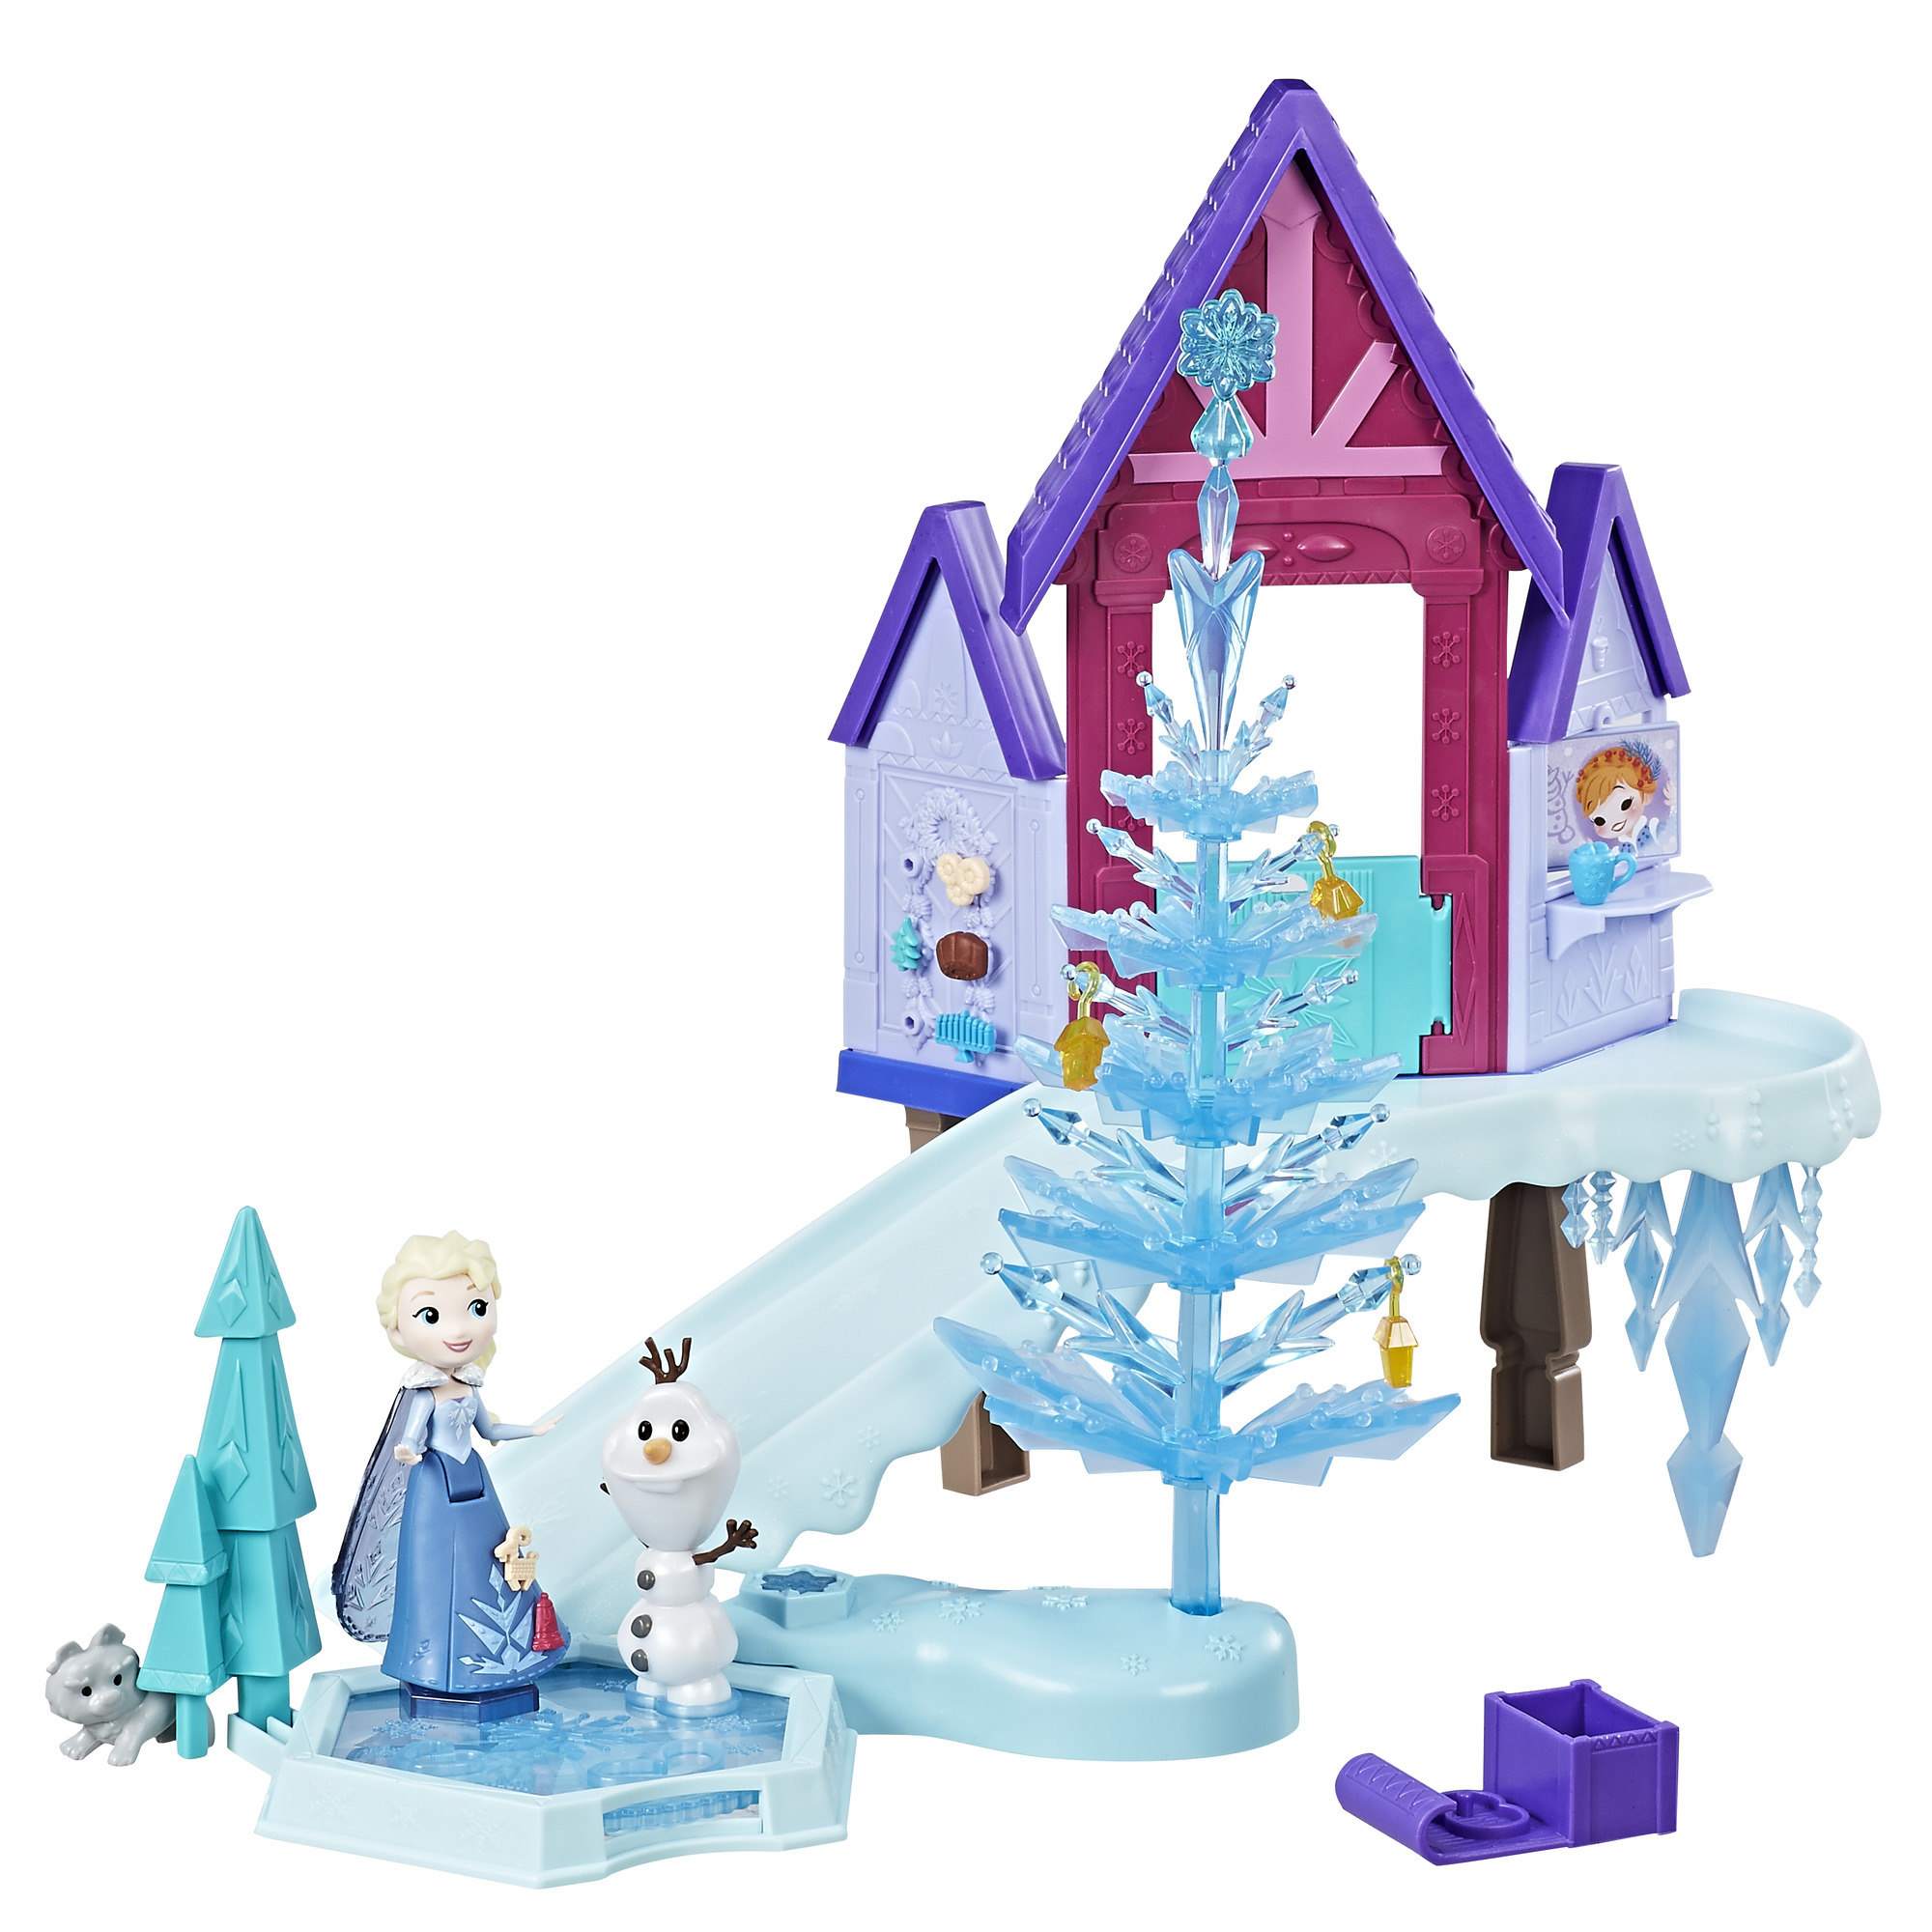 Disney Frozen Arendelle's Festive Celebration by Hasbro